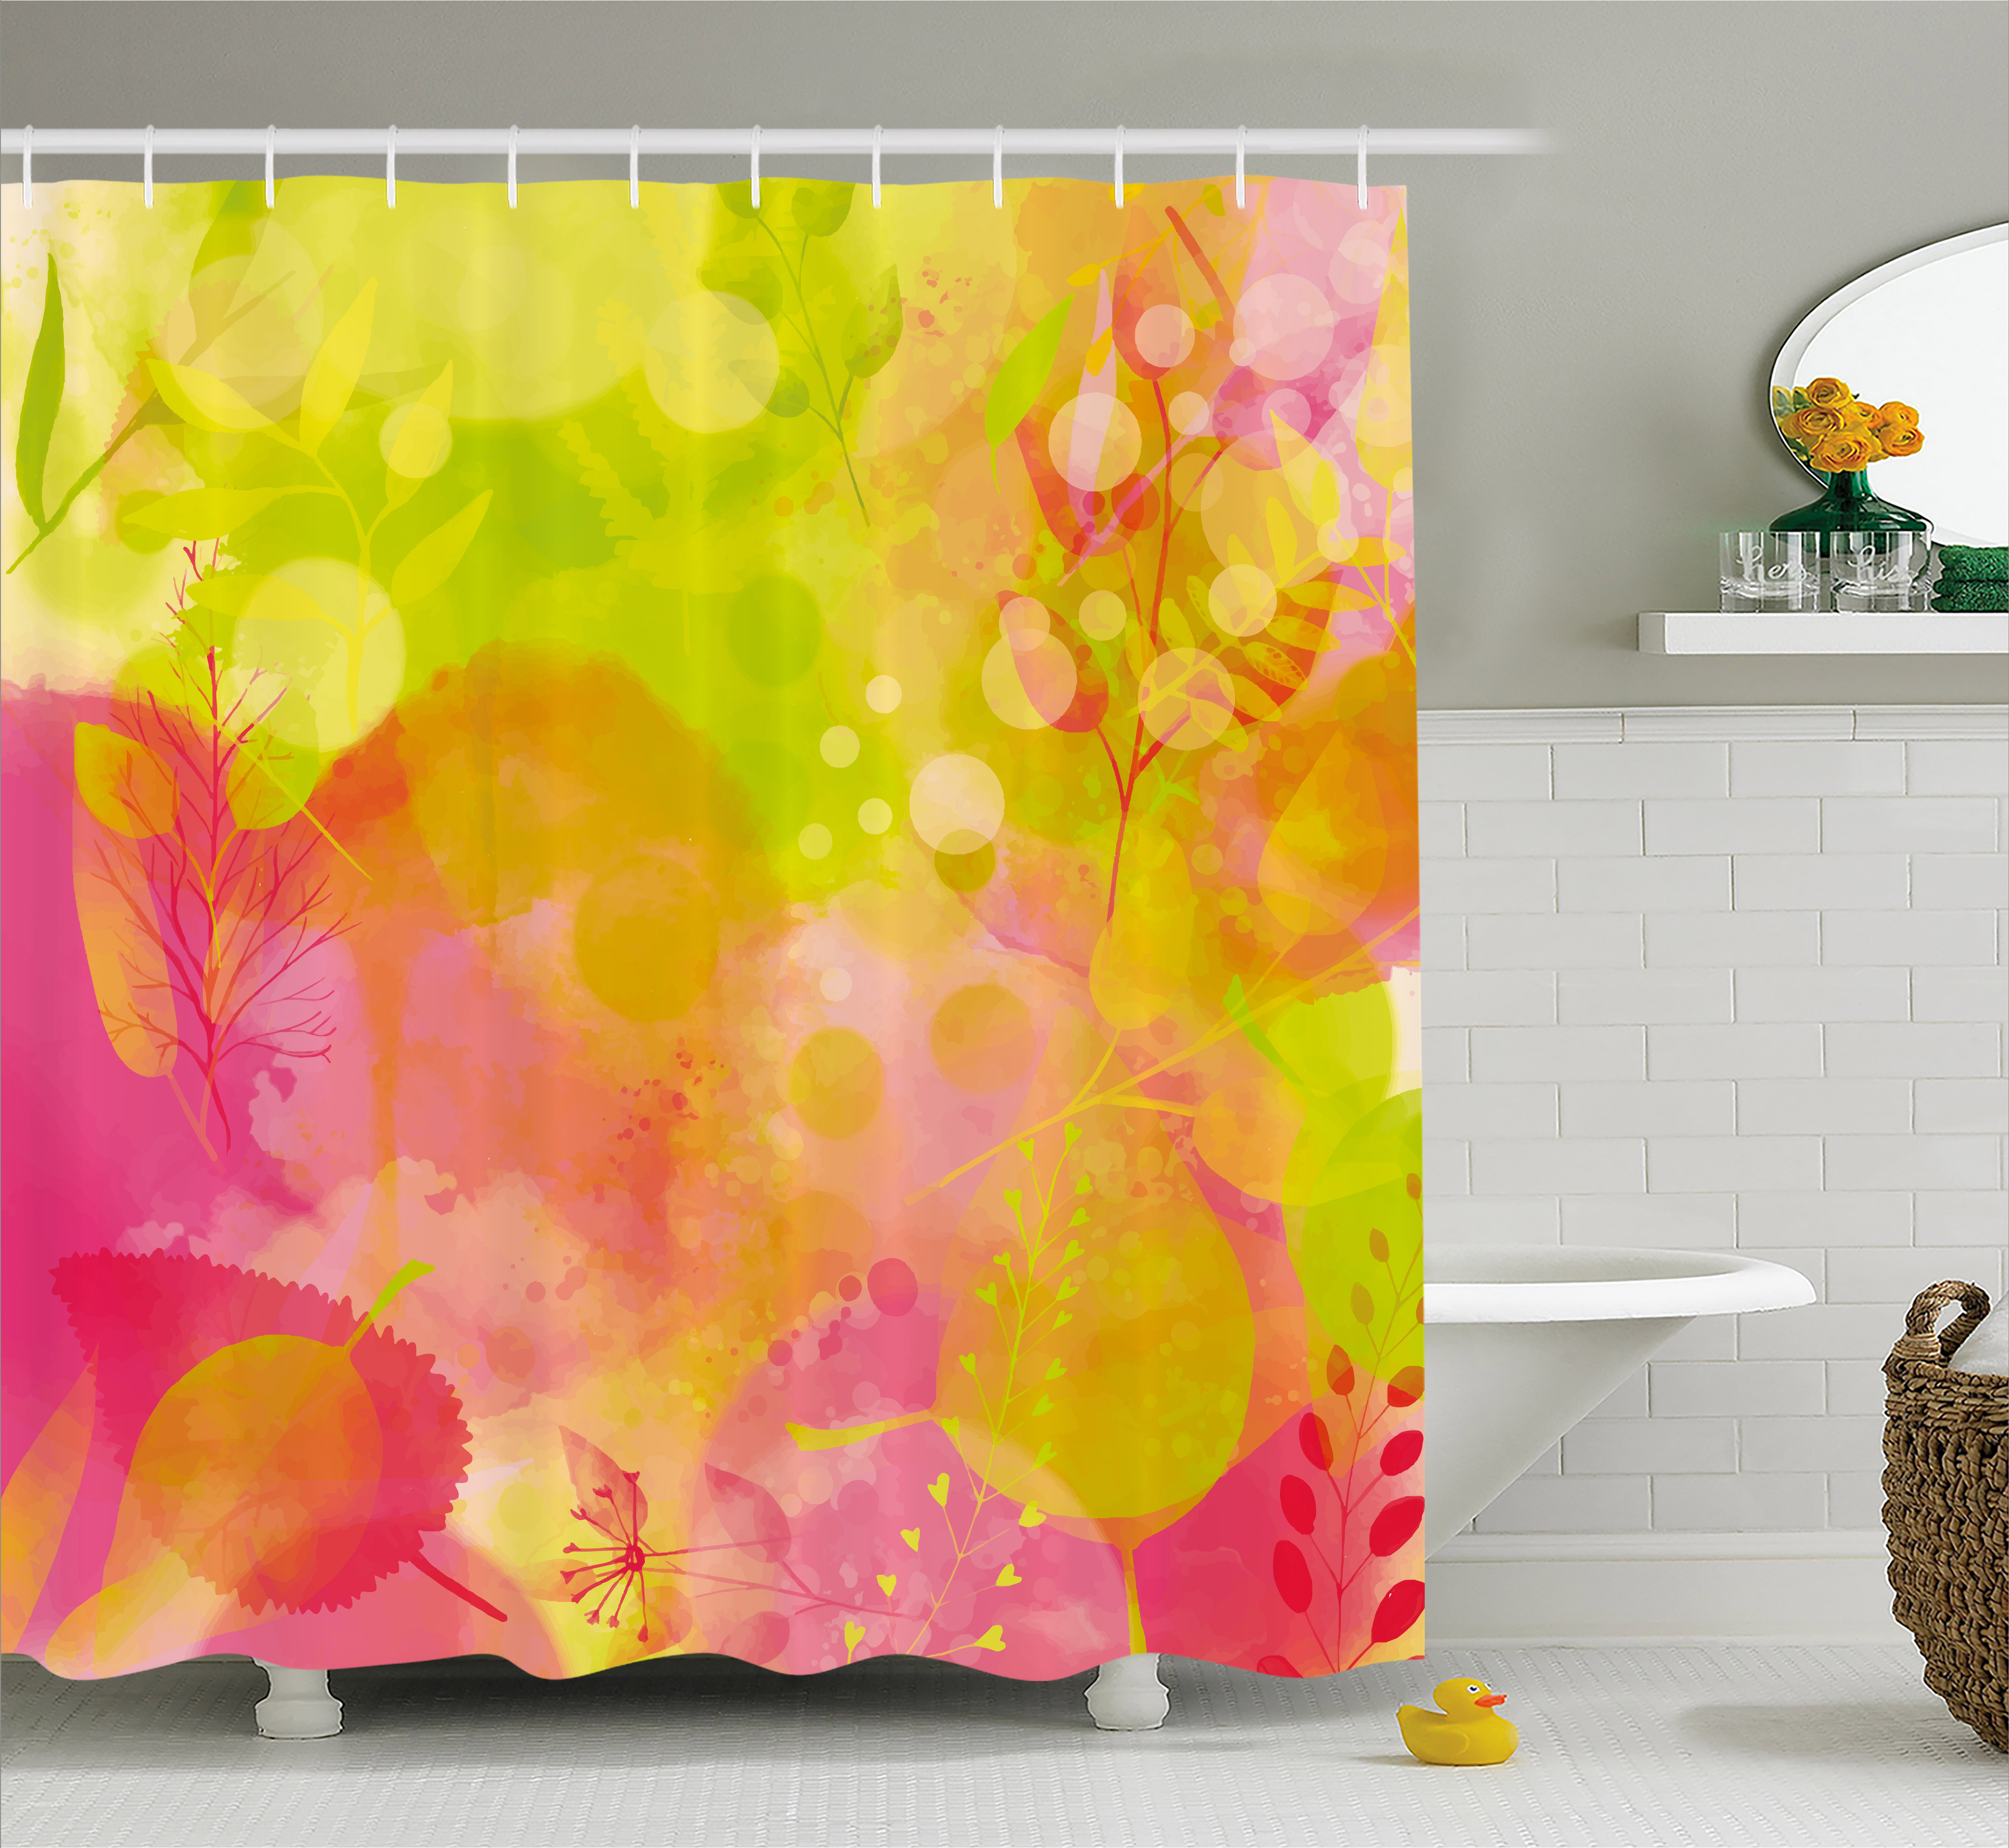 Pastel Shower Curtain Nature Inspired Watercolor Paintbrush Spring Yard Psychedelic Artwork Fabric Bathroom Set With Hooks 69W X 84L Inches Extra Long